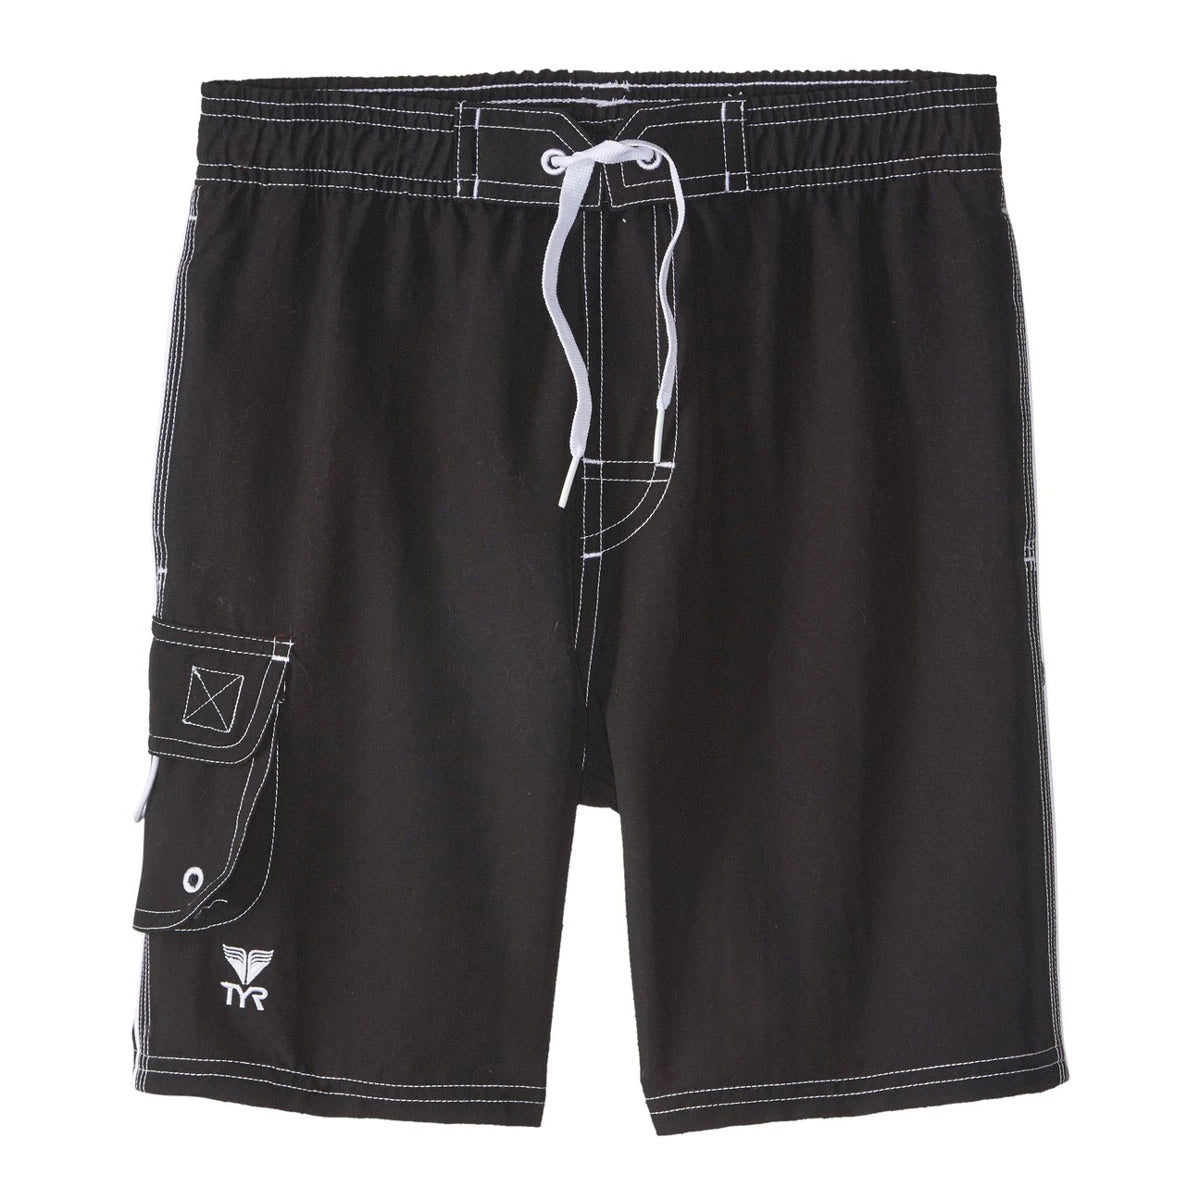 TYR Challenger Men's Swim Short